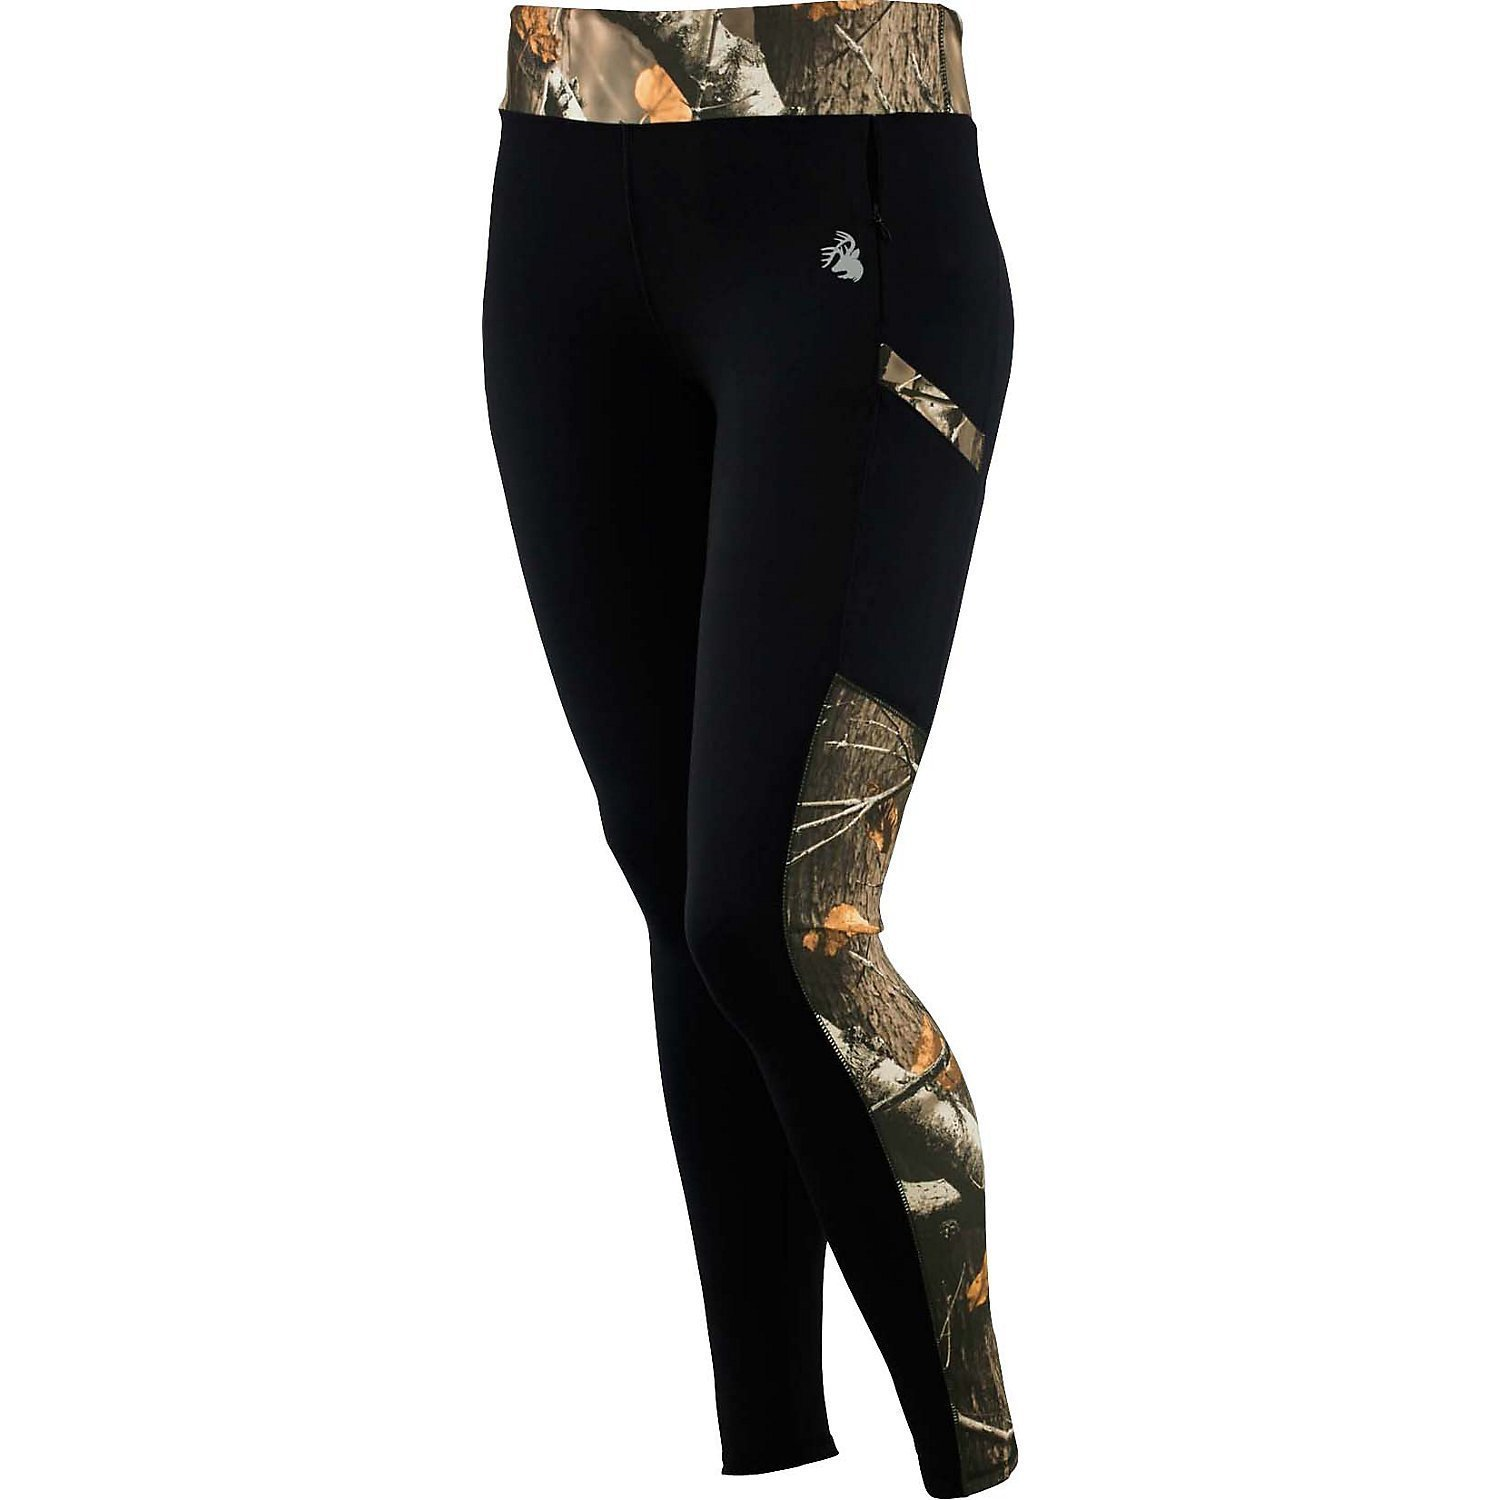 8517b440c572e These poly⁄spandex leggings feature Big Game Camo® and a reflective  Legendary® Signature Buck decoration. Two handy side pockets and one  invisible zippered ...